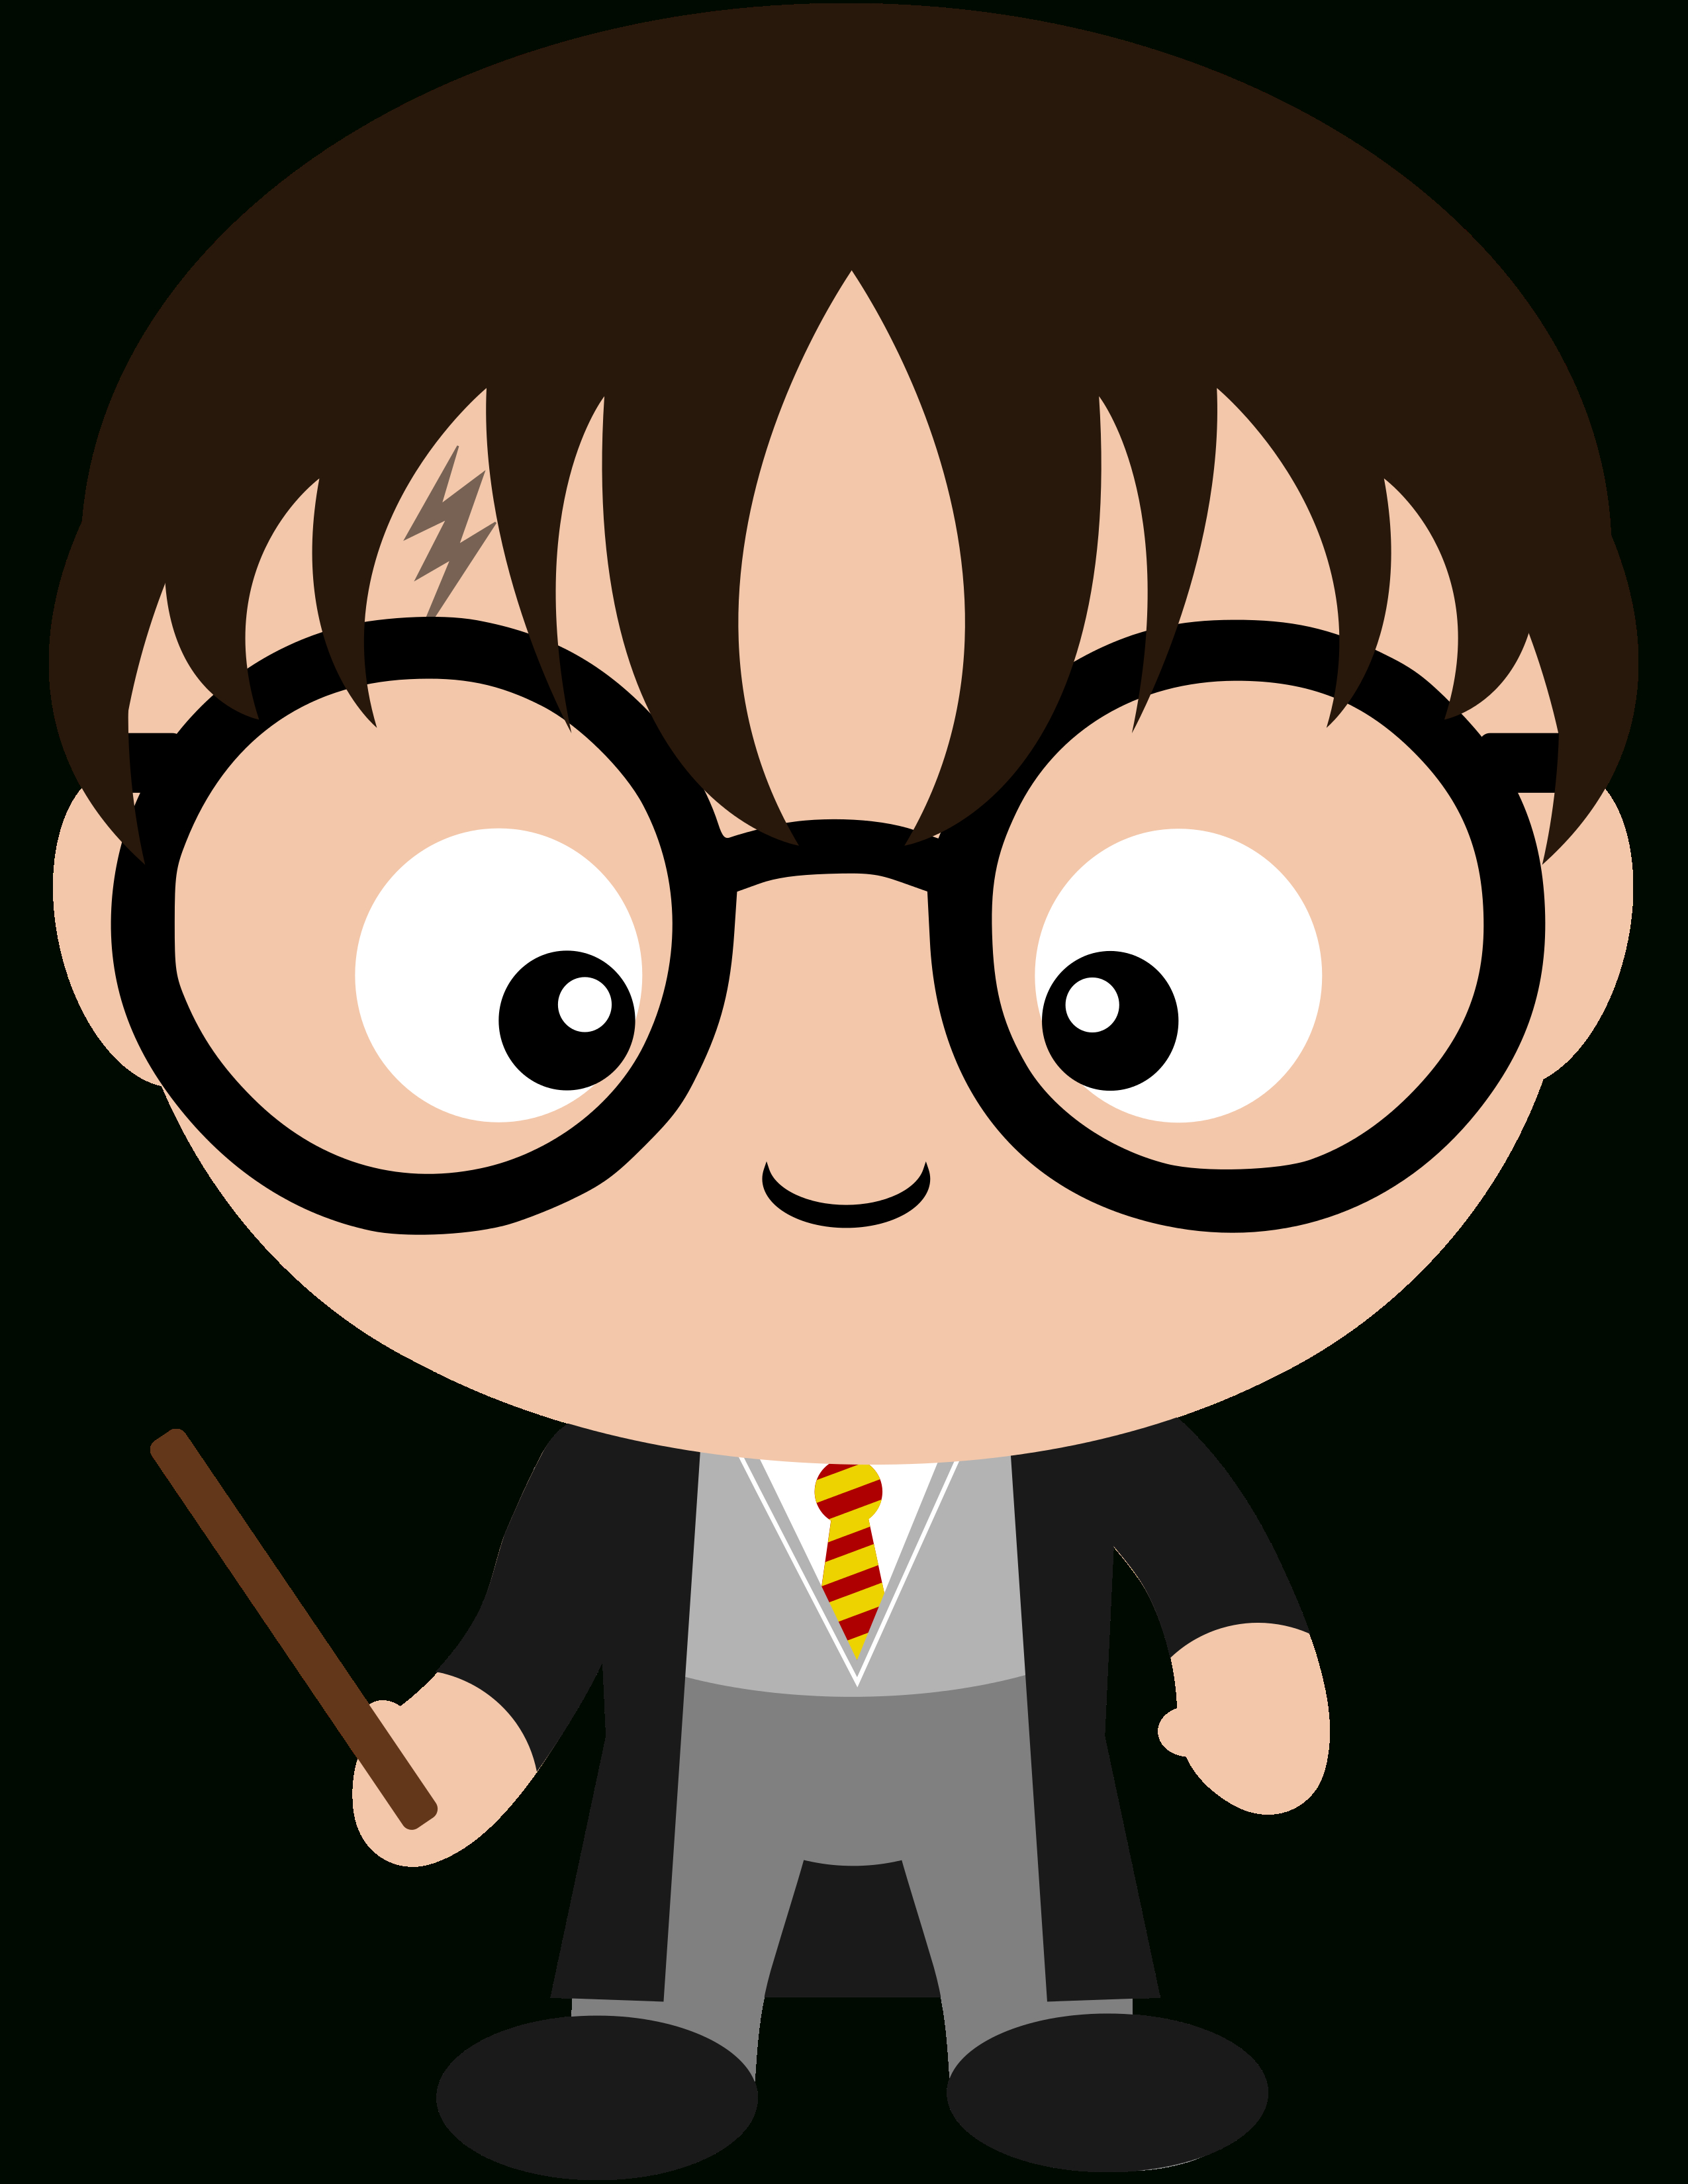 Free Harry Potter Clipart   Free Download Best Free Harry Potter - Free Printable Harry Potter Clip Art